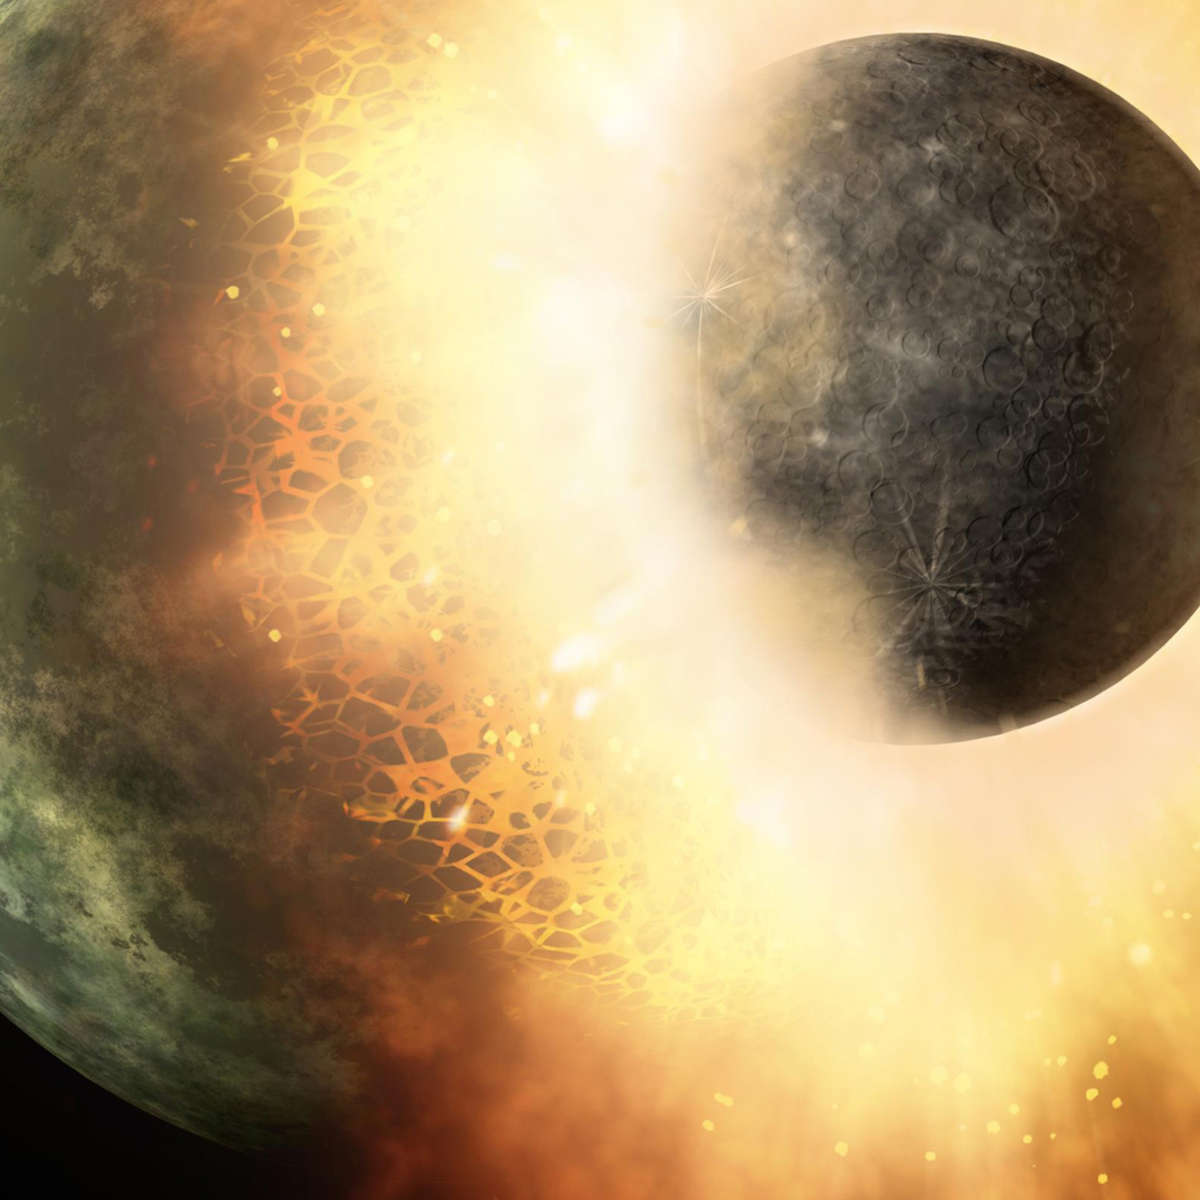 Artwork depicting an apocalyptic event: the collision of two planetary-mass bodies. Credit: NASA/JPL-Caltech